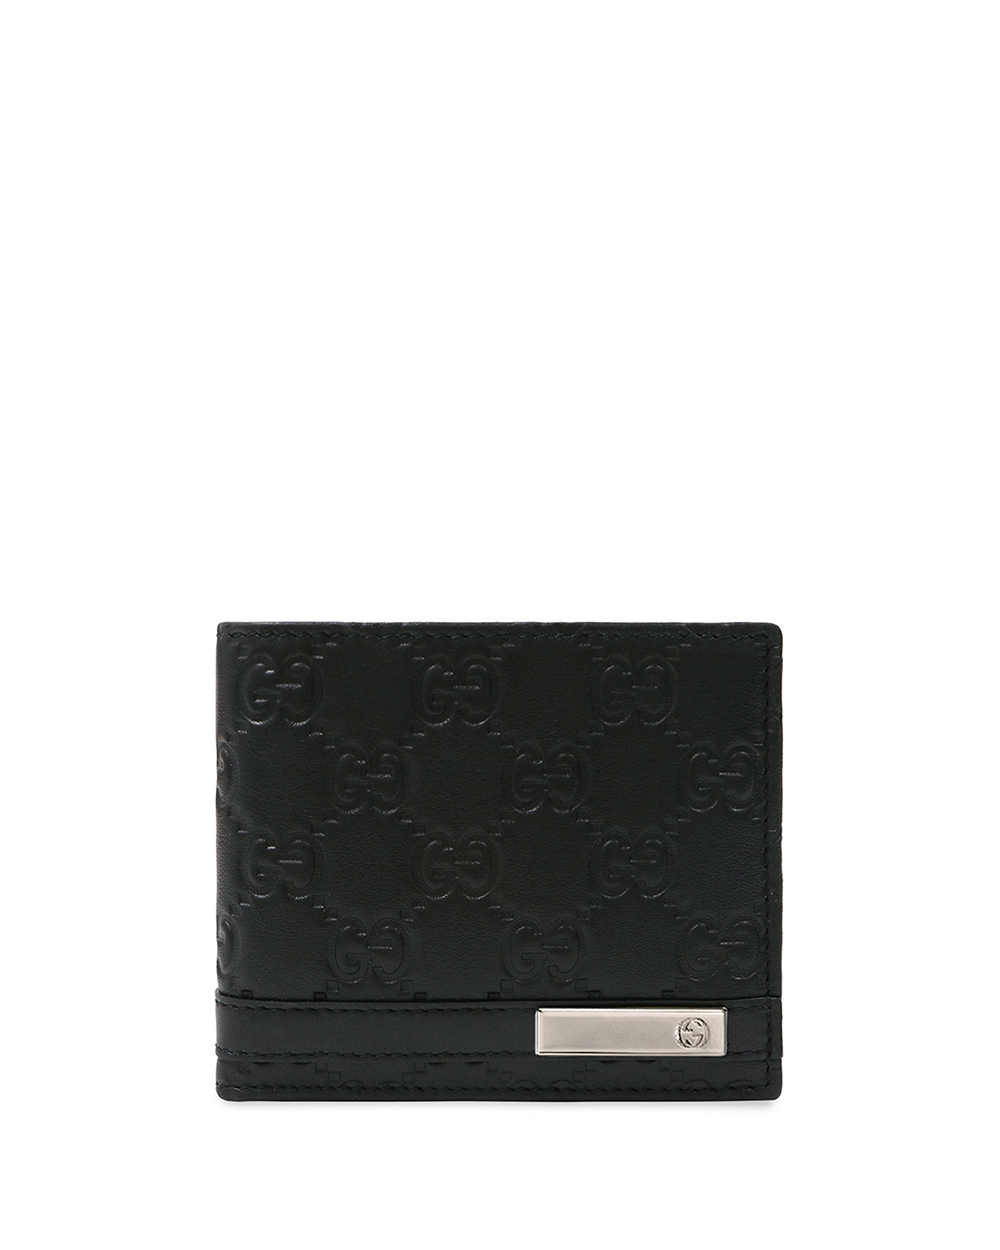 Metal Bar Guccissima Bi-fold Wallet